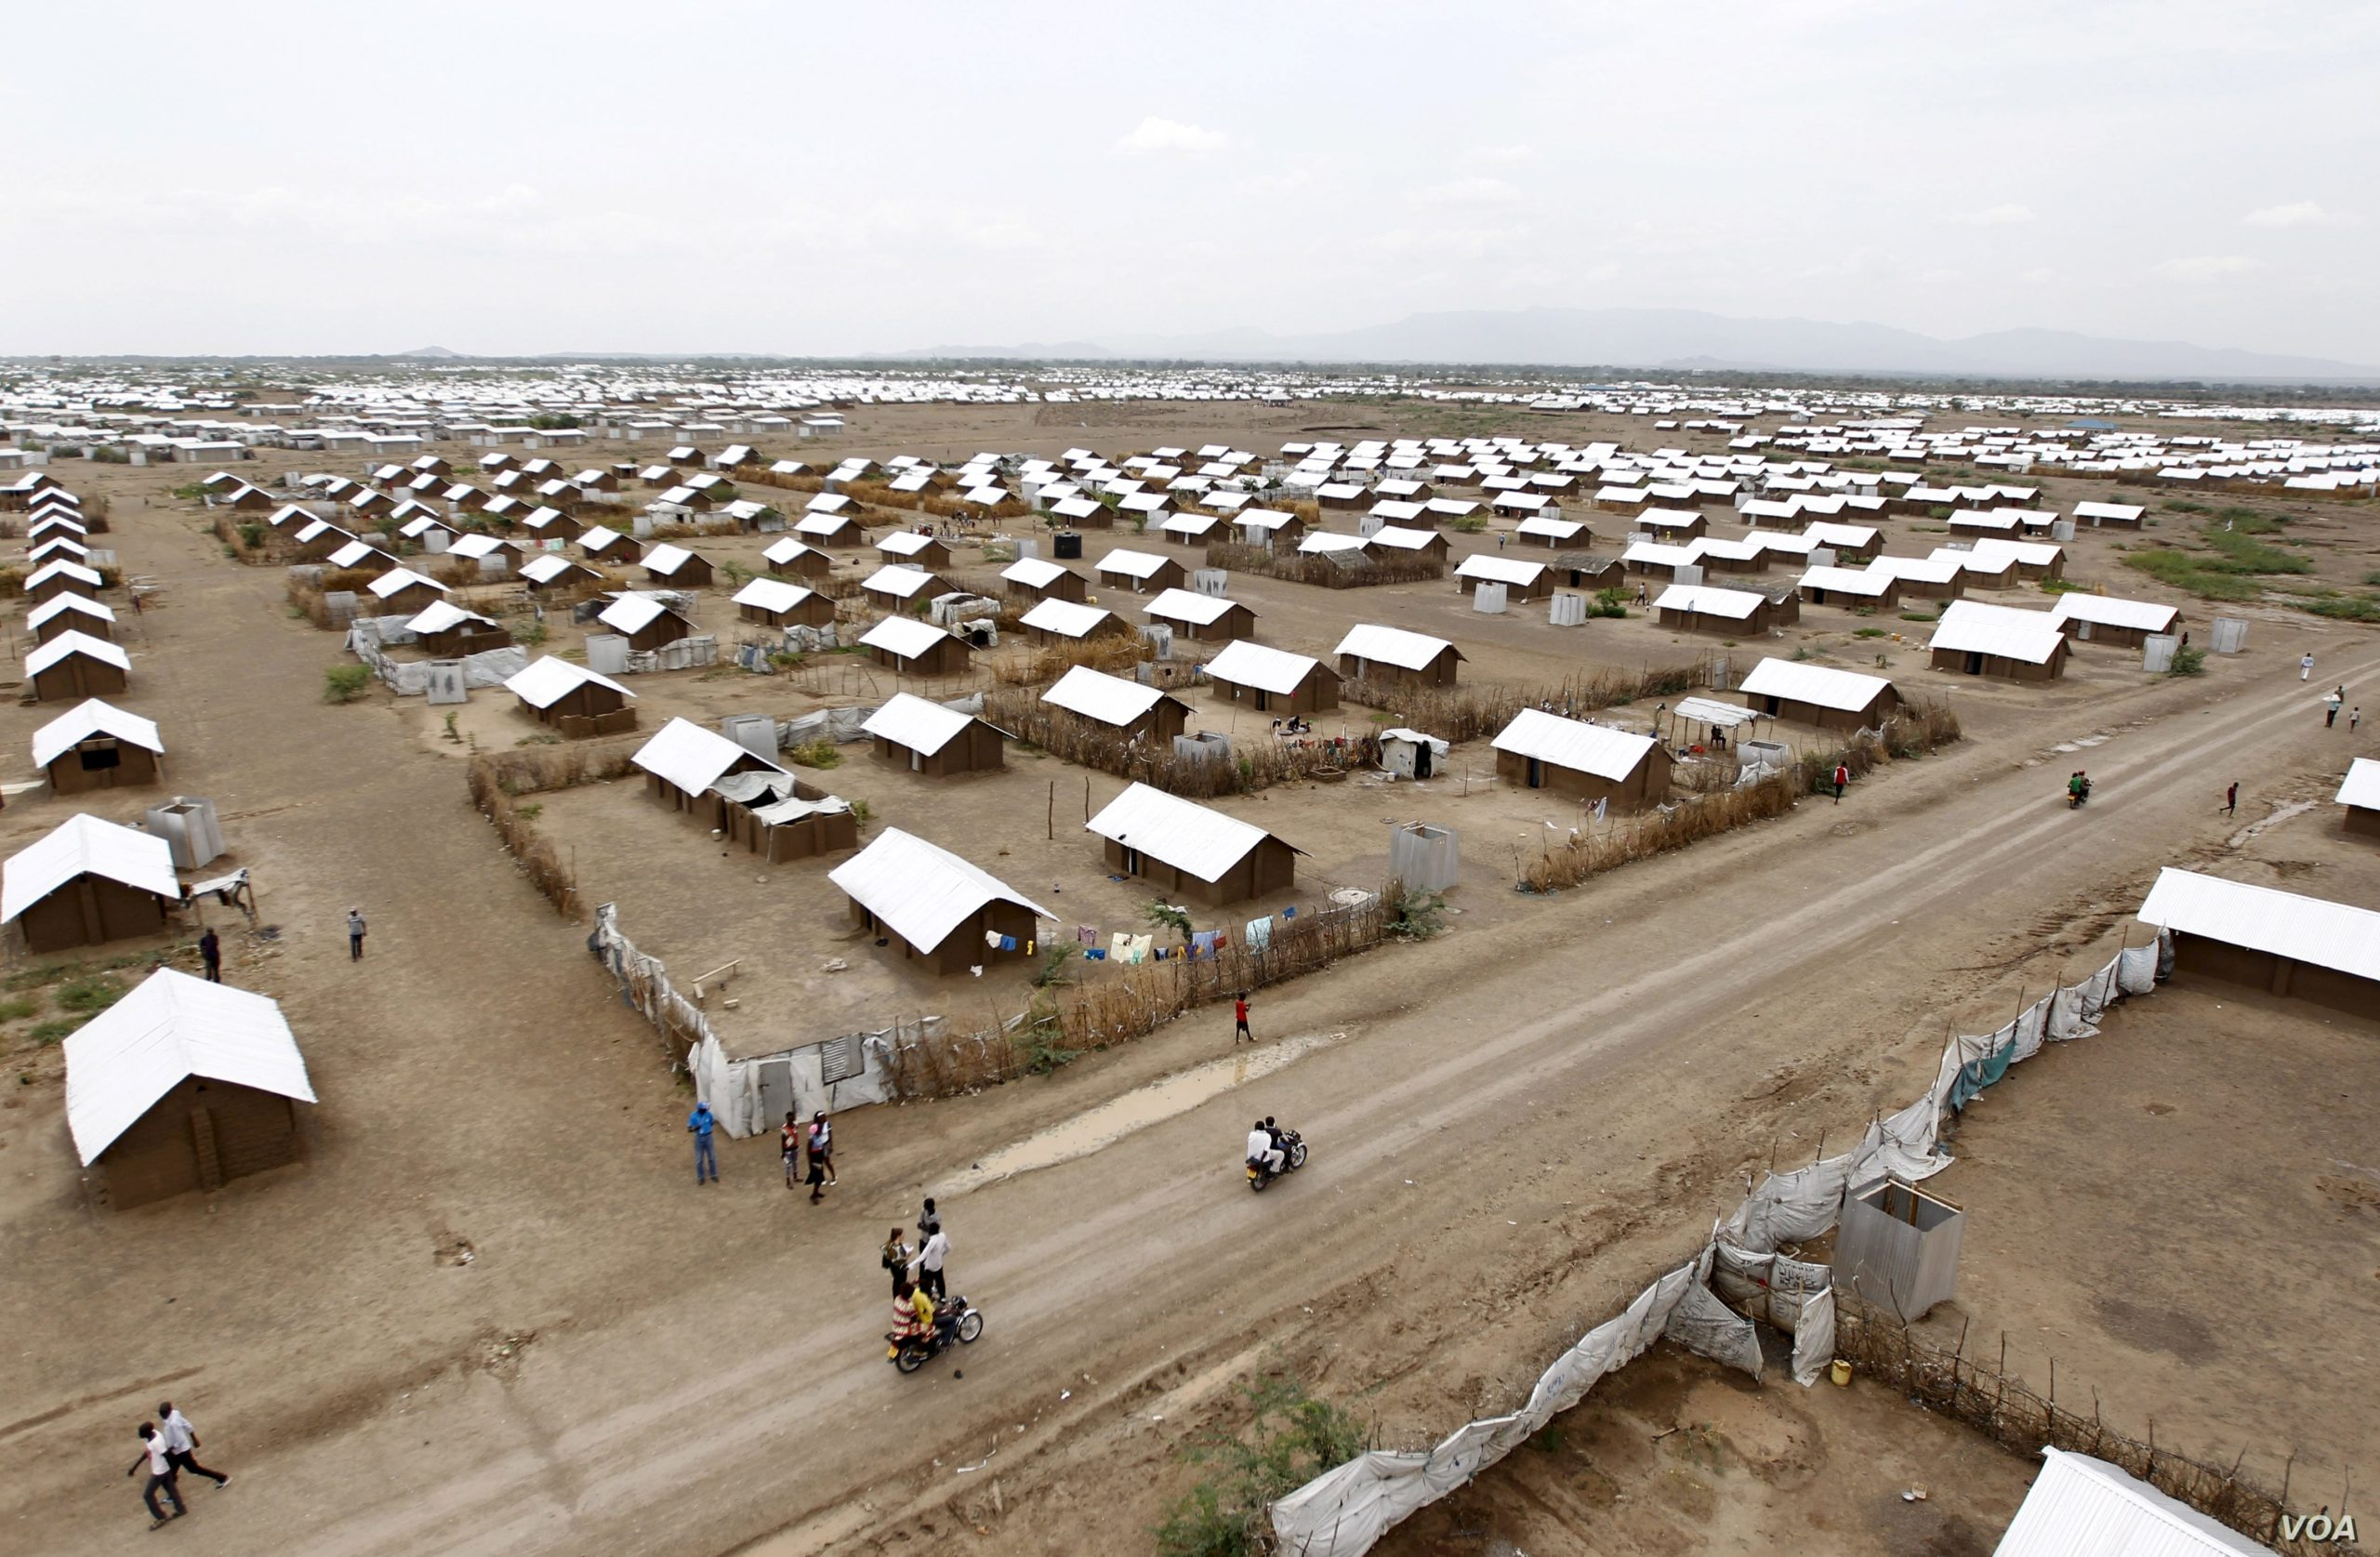 Kenyans warm to refugees after benefiting from them